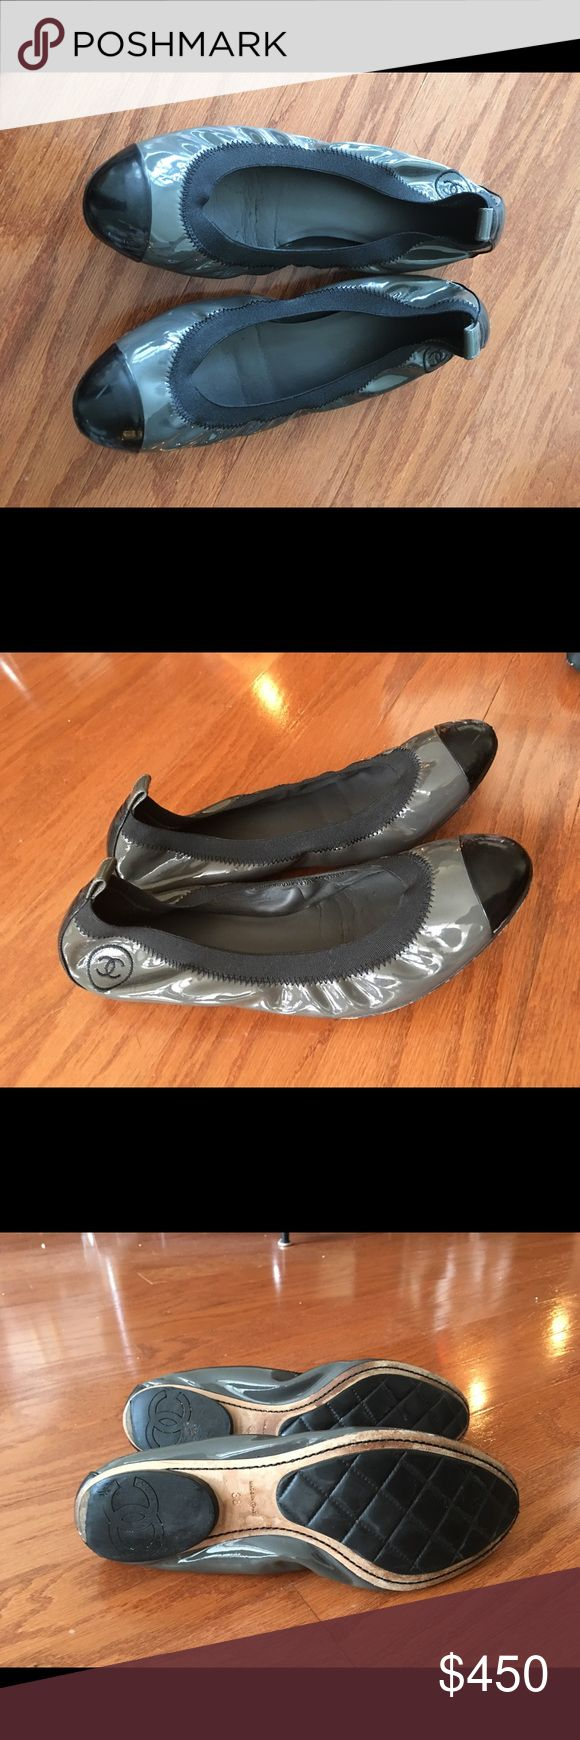 chanel grey black patent leather flats chanel grey black patent leather flats sold